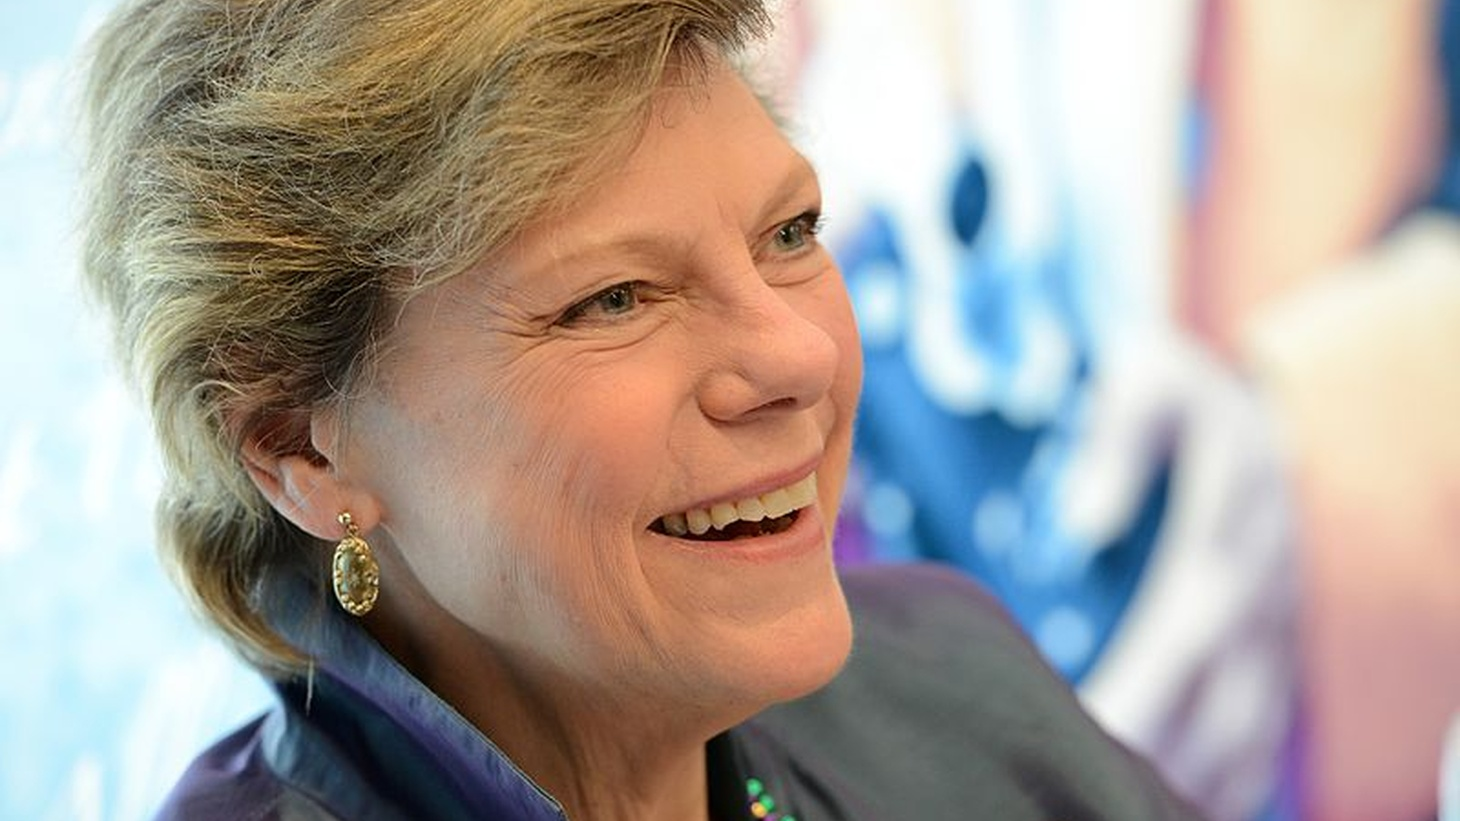 Cokie Roberts at an event at the LBJ Presidential Library, February 28, 2017.